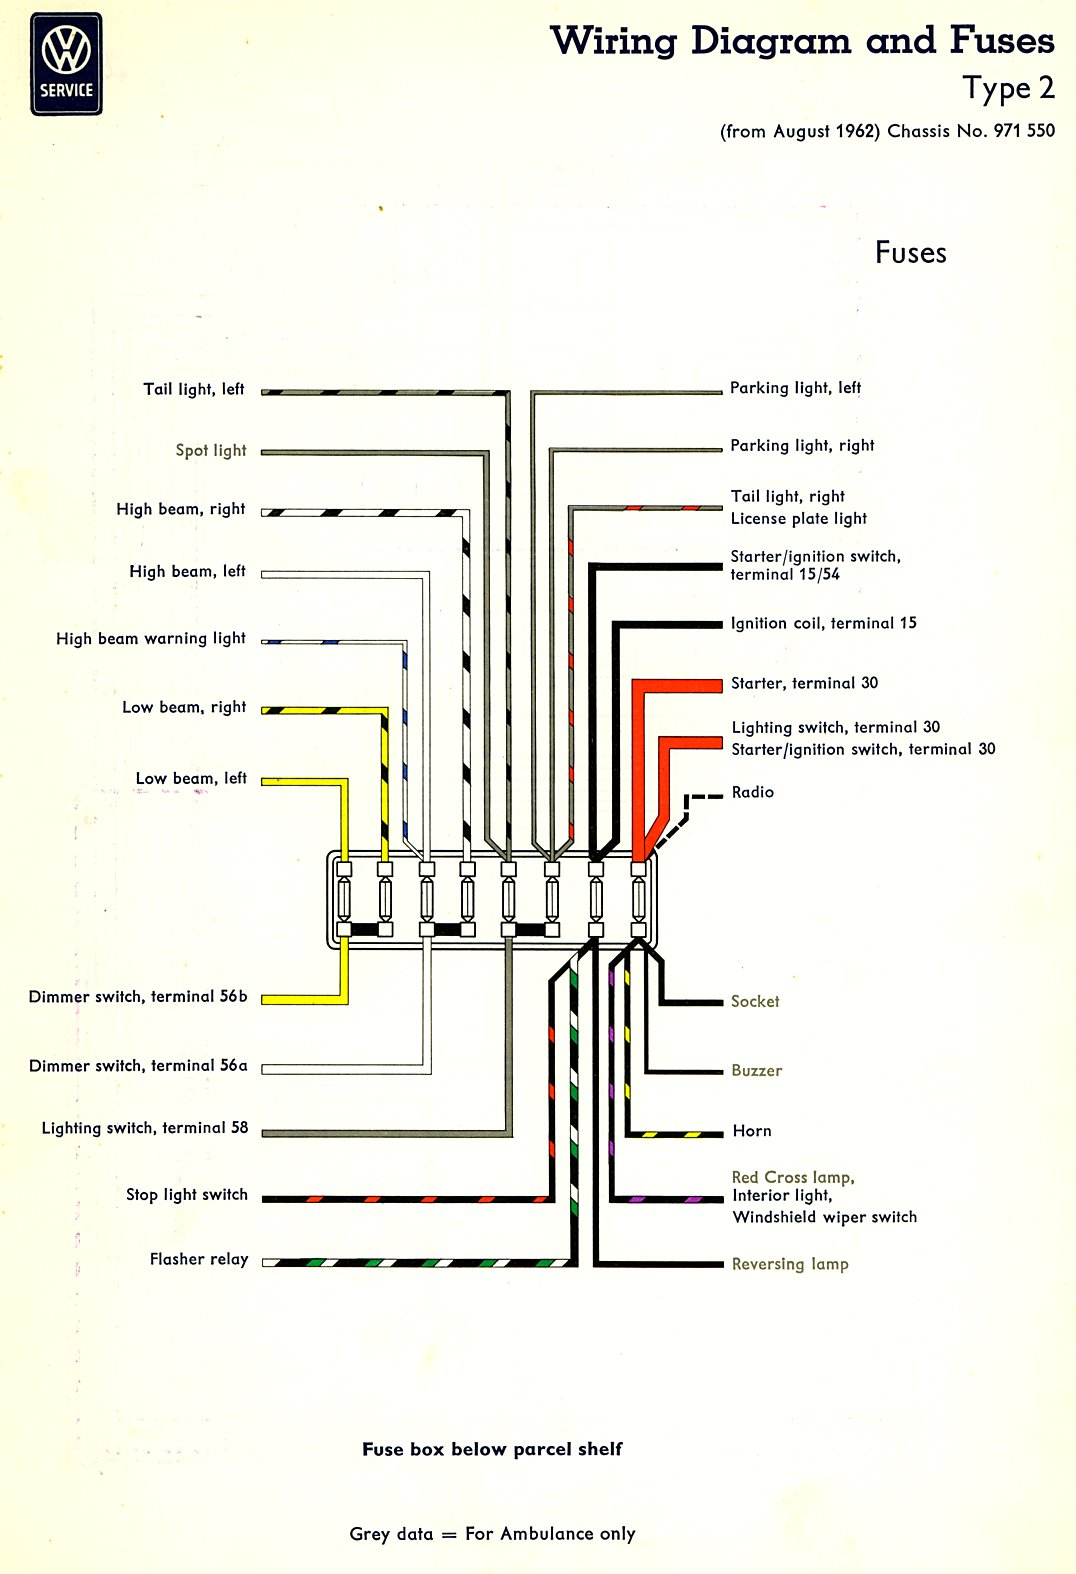 63 vw fuse diagram schematics wiring diagrams u2022 rh parntesis co 1990 VW  Fuse Diagram 72